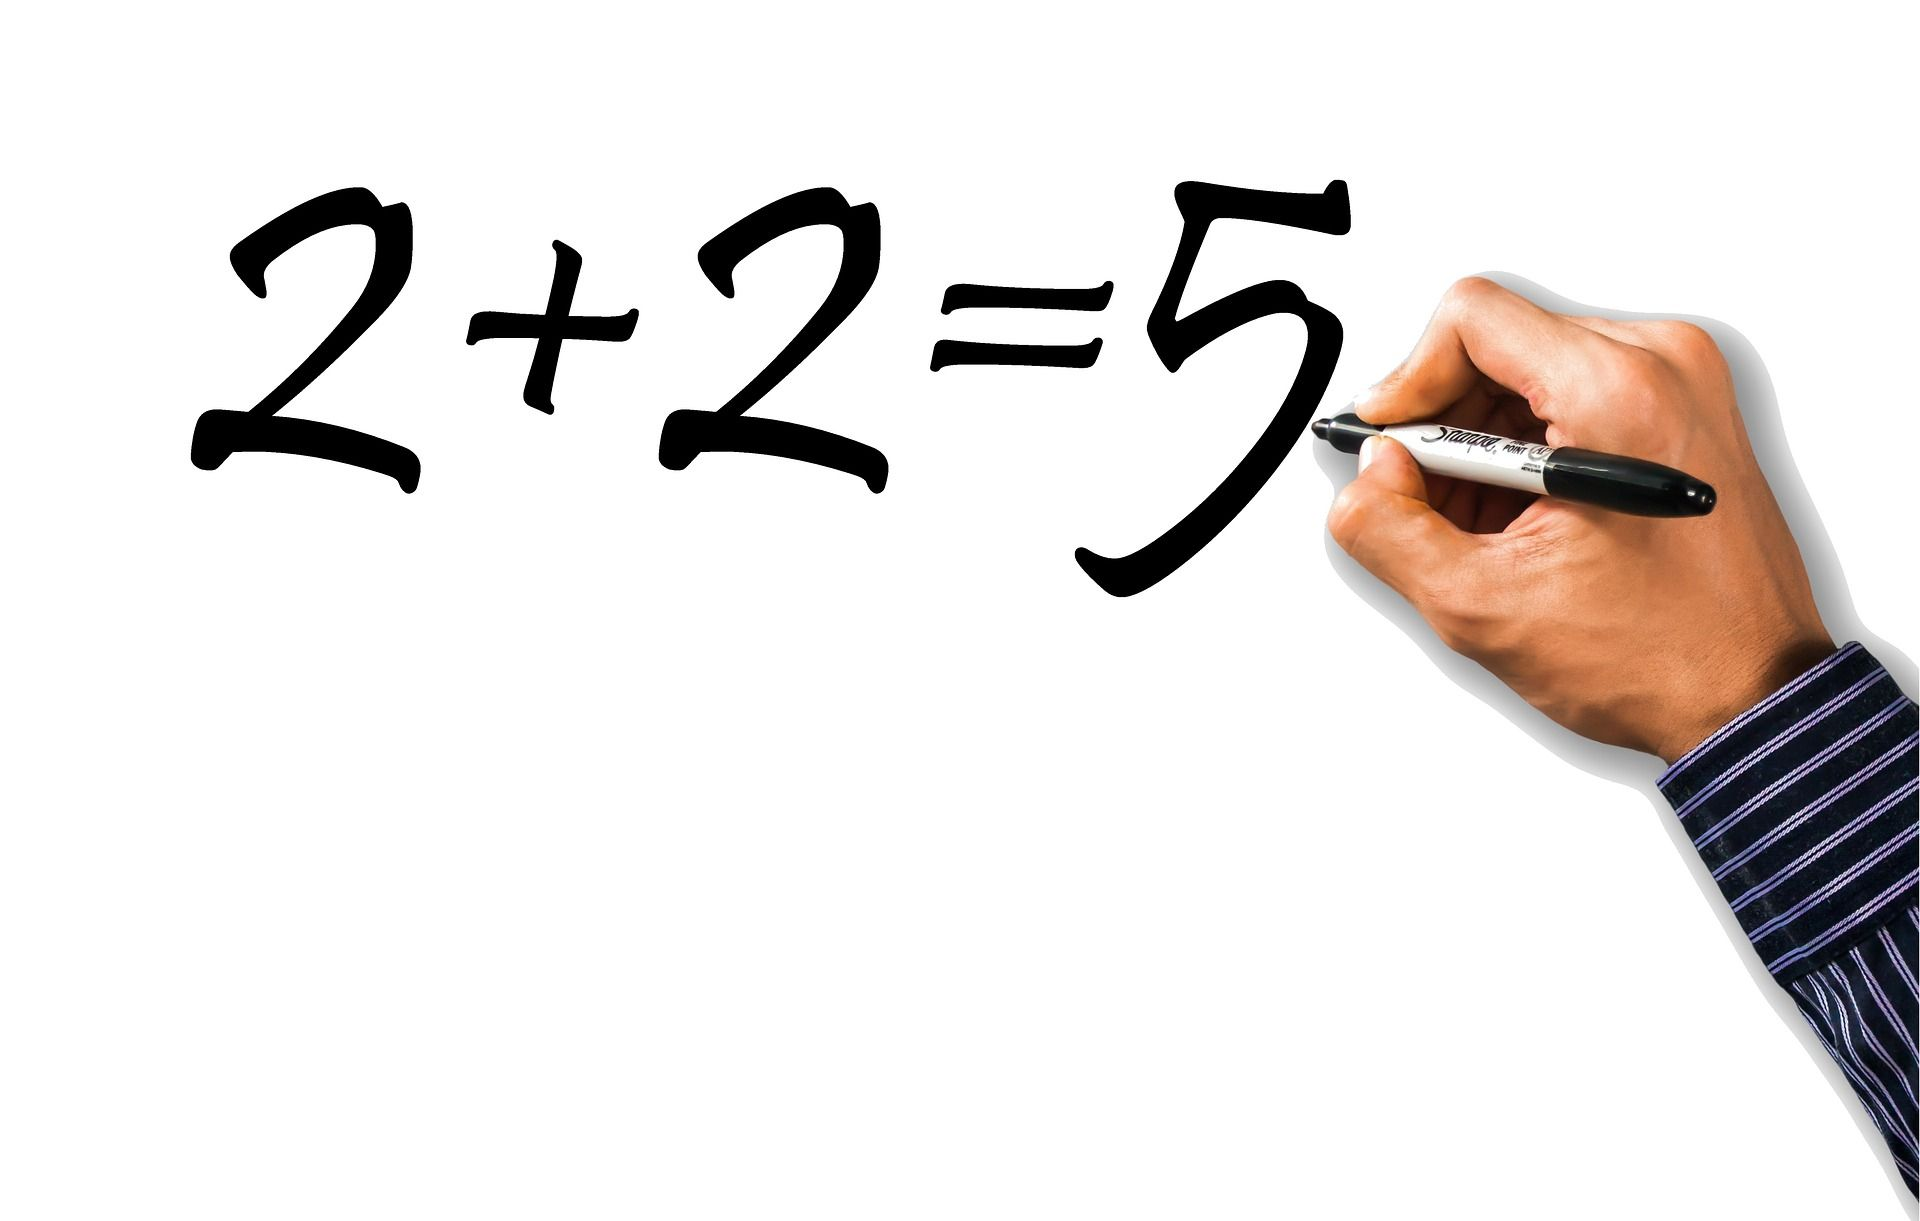 An illustration of someone writing the equation two plus two equals five.